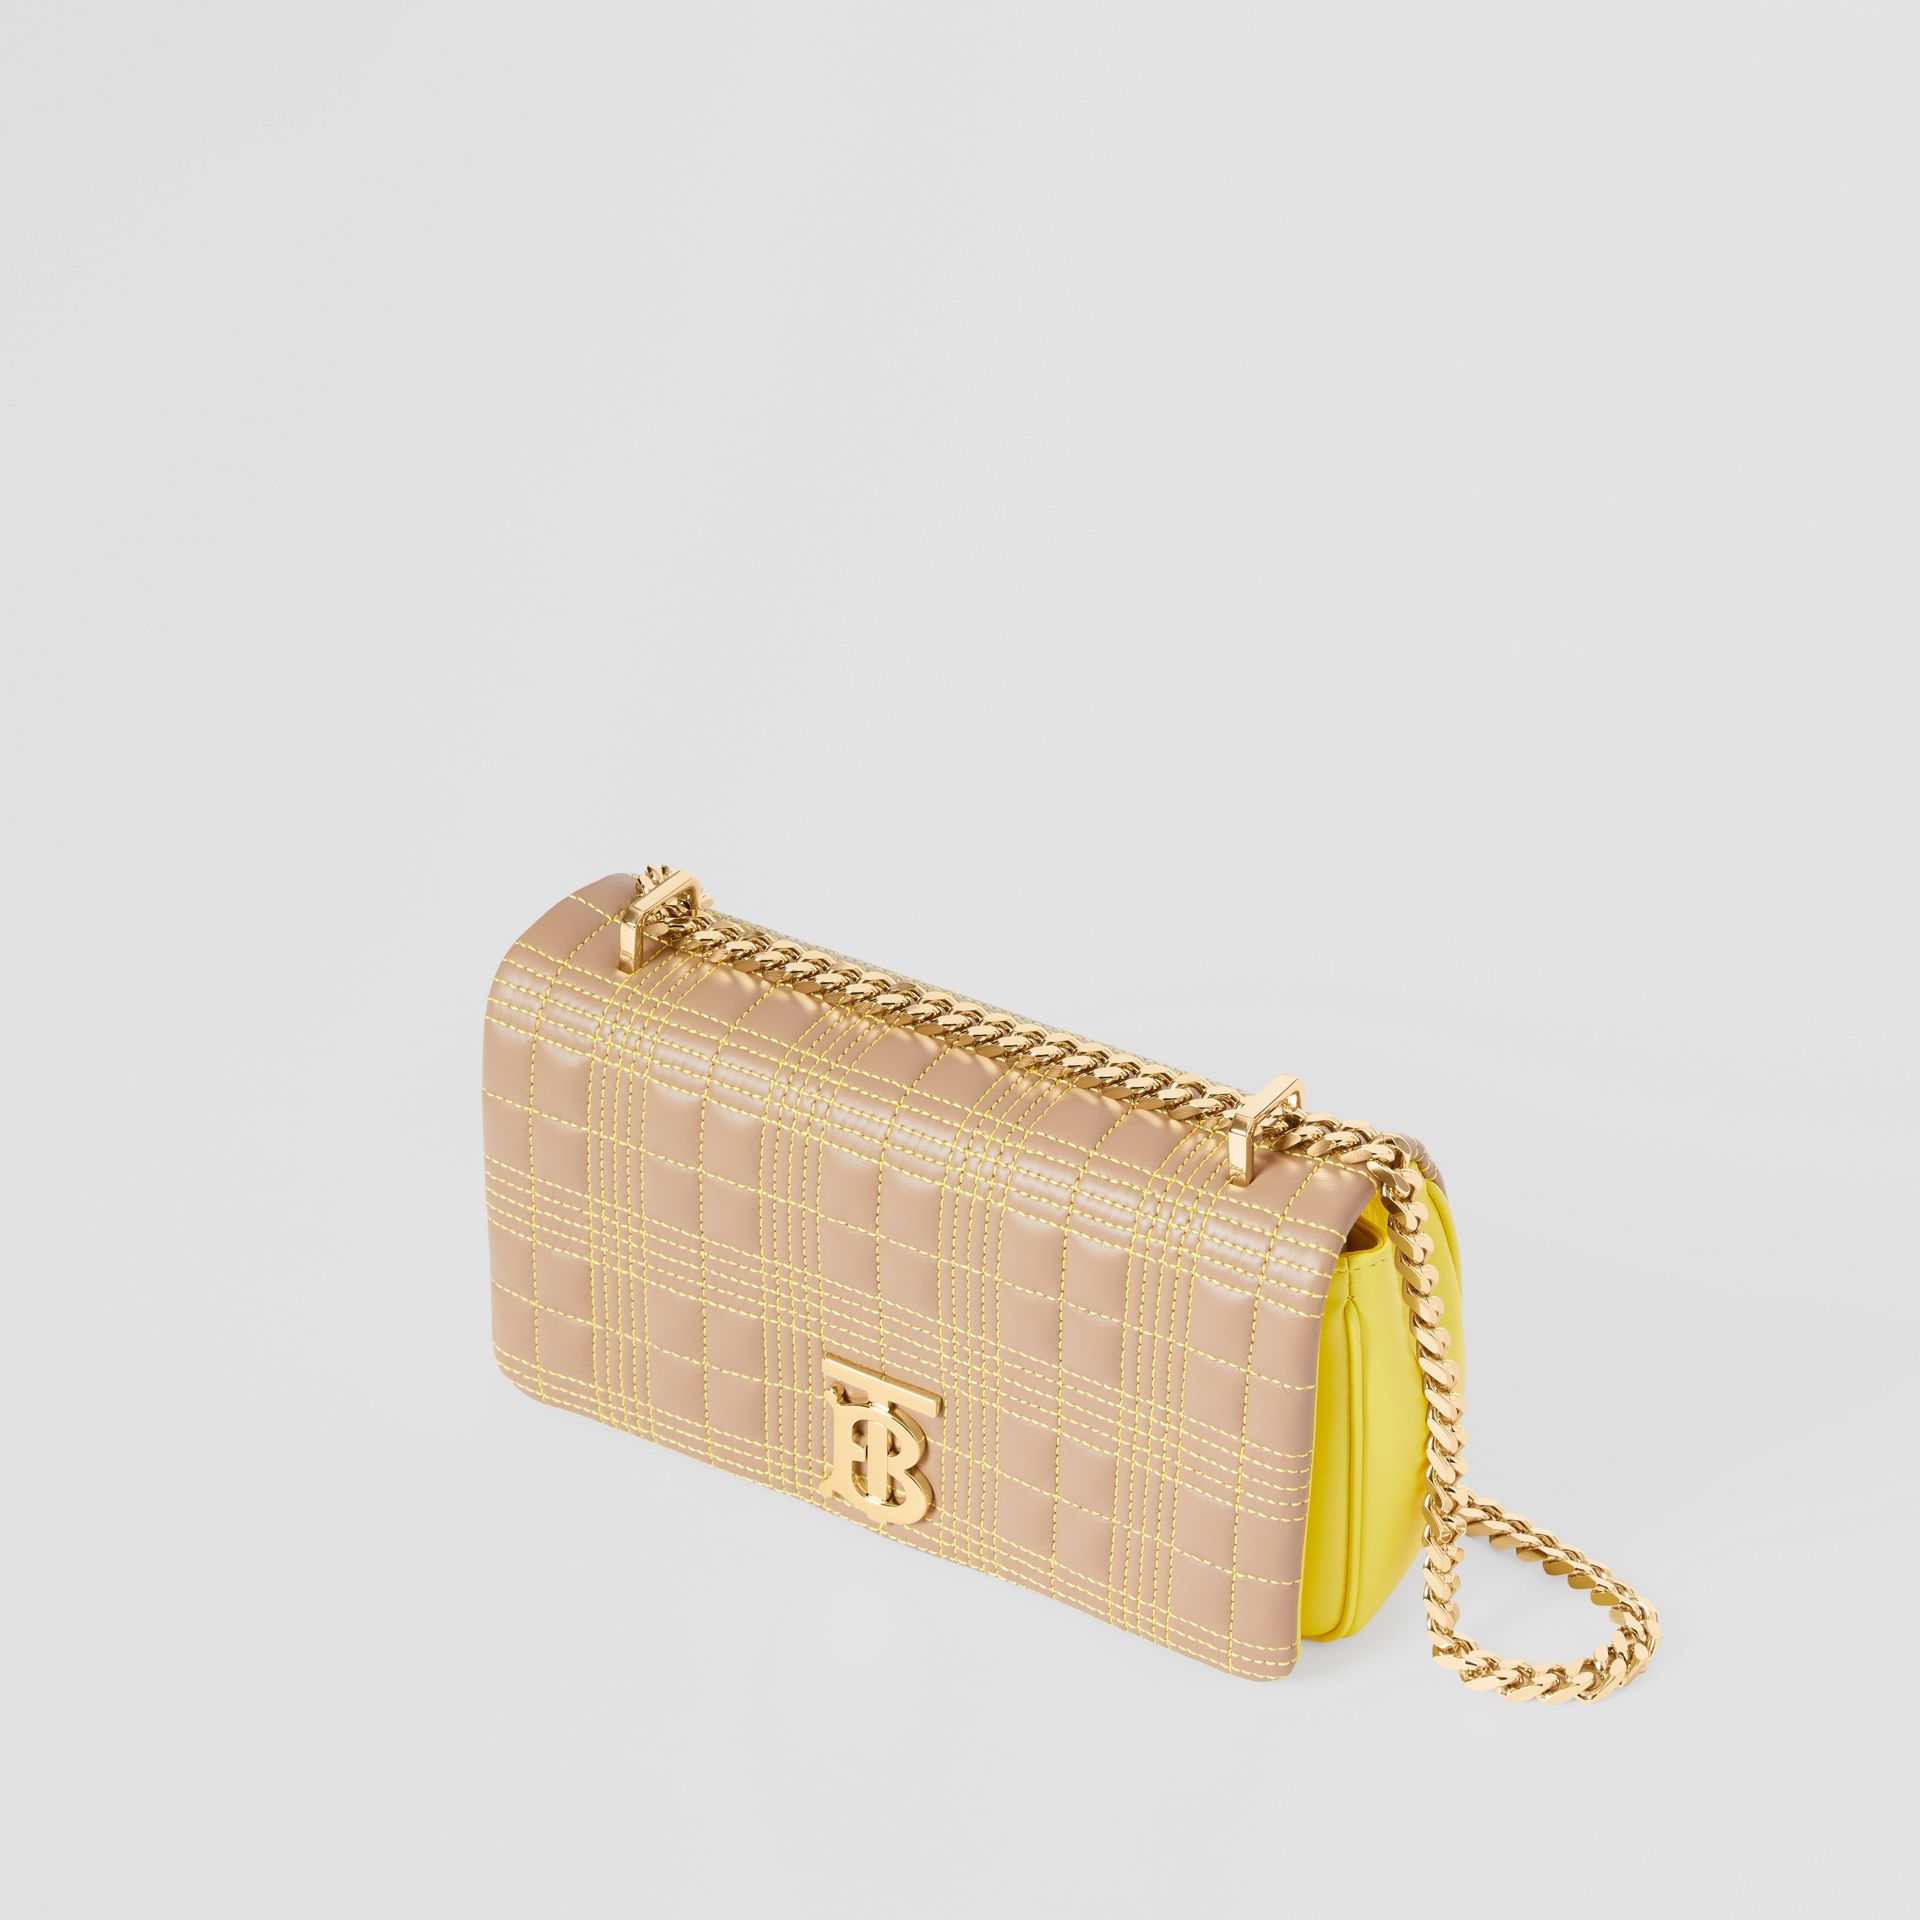 Small Quilted Tri-tone Lambskin Lola Bag in Camel/yellow - Women | Burberry Canada - gallery image 3